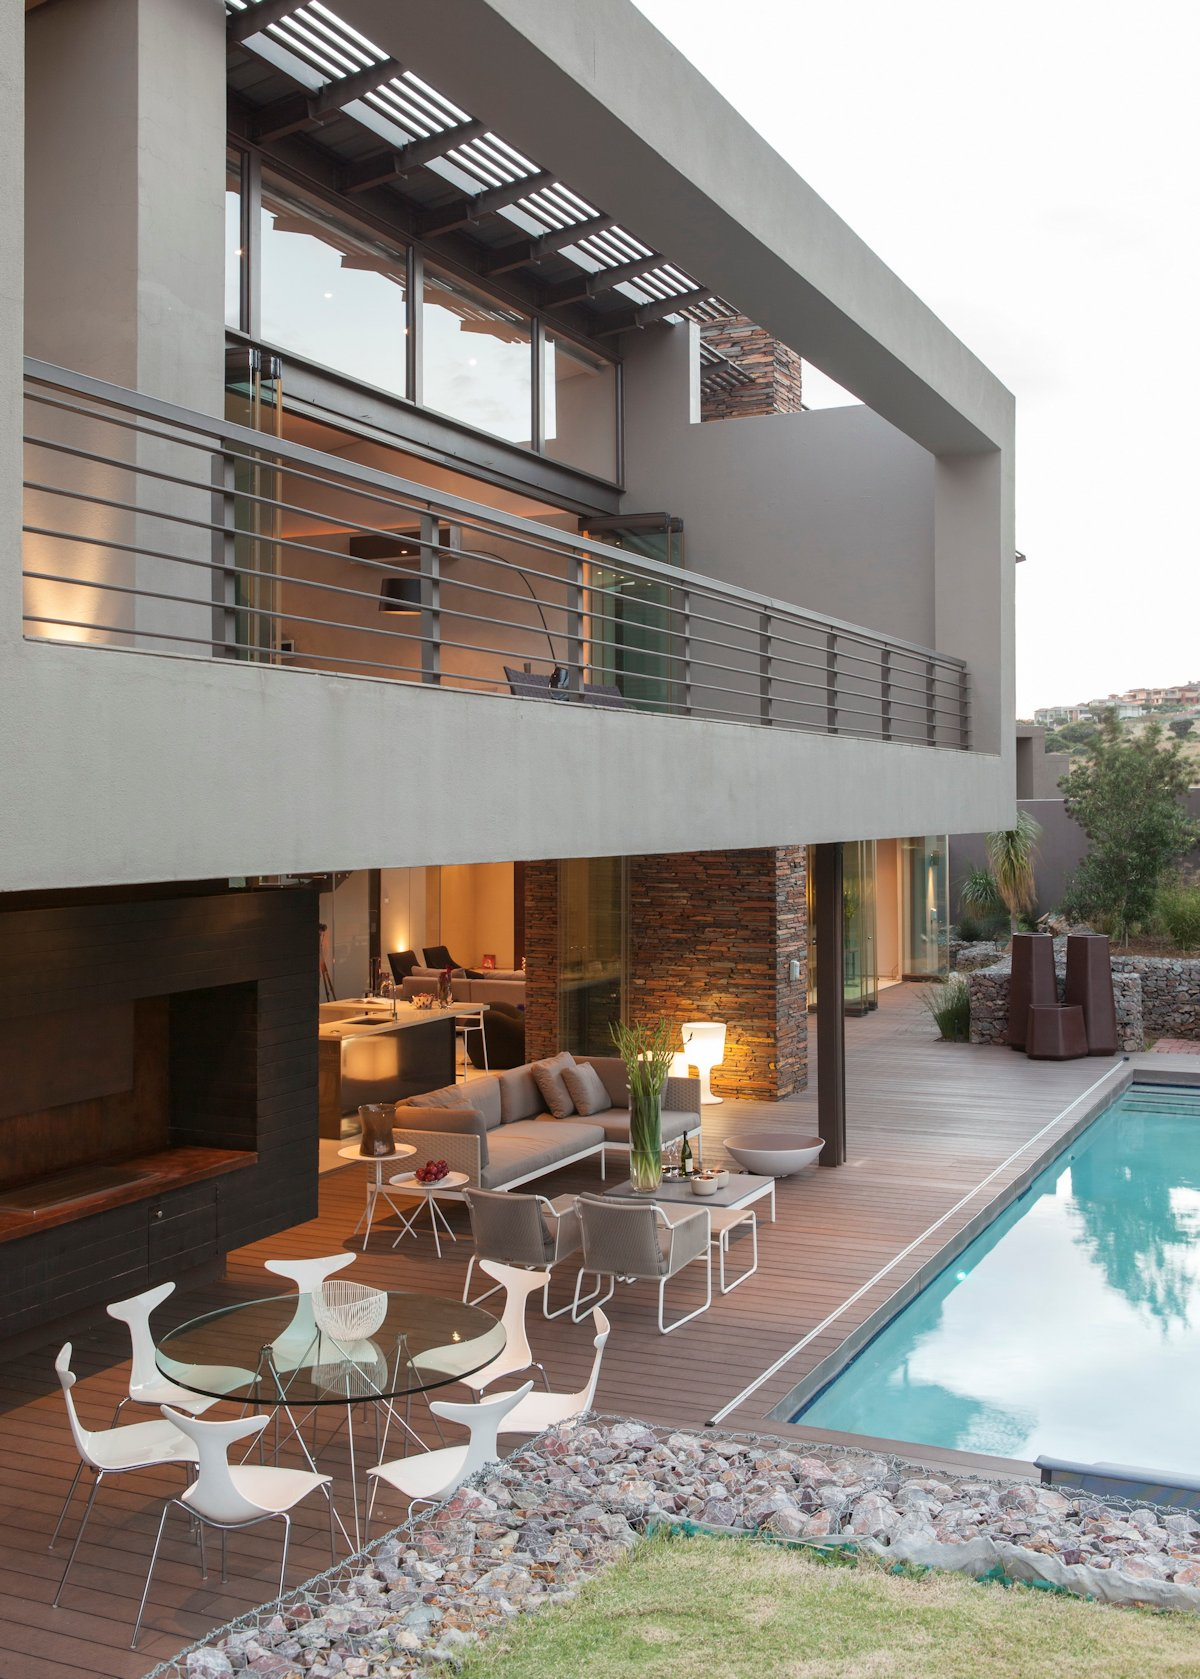 Outdoor Dining, Balcony, Pool, House in Johannesburg